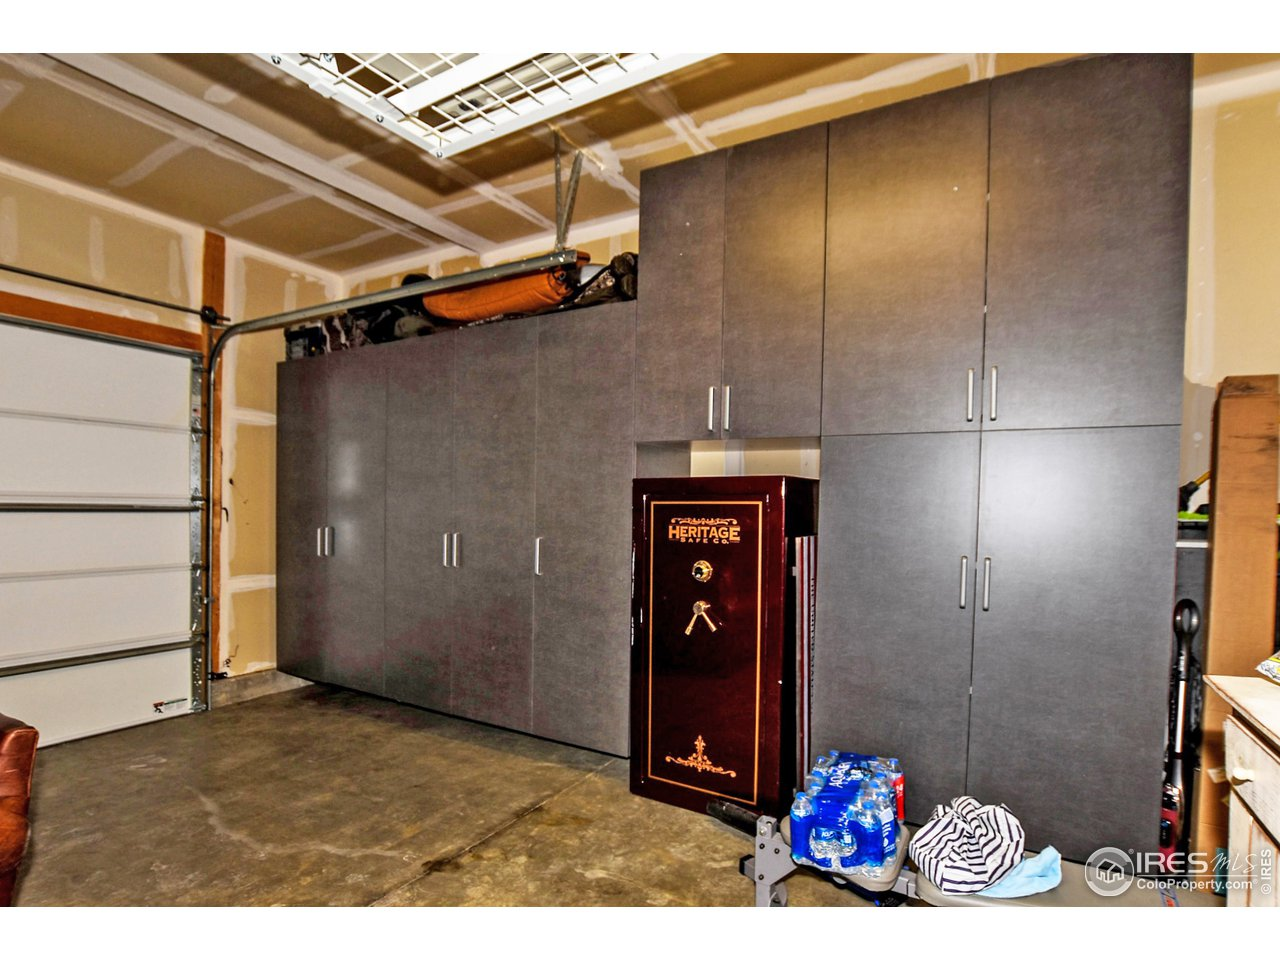 Custom storage cabinets in the oversized 2 car garage and safe are included in the sale of the home!